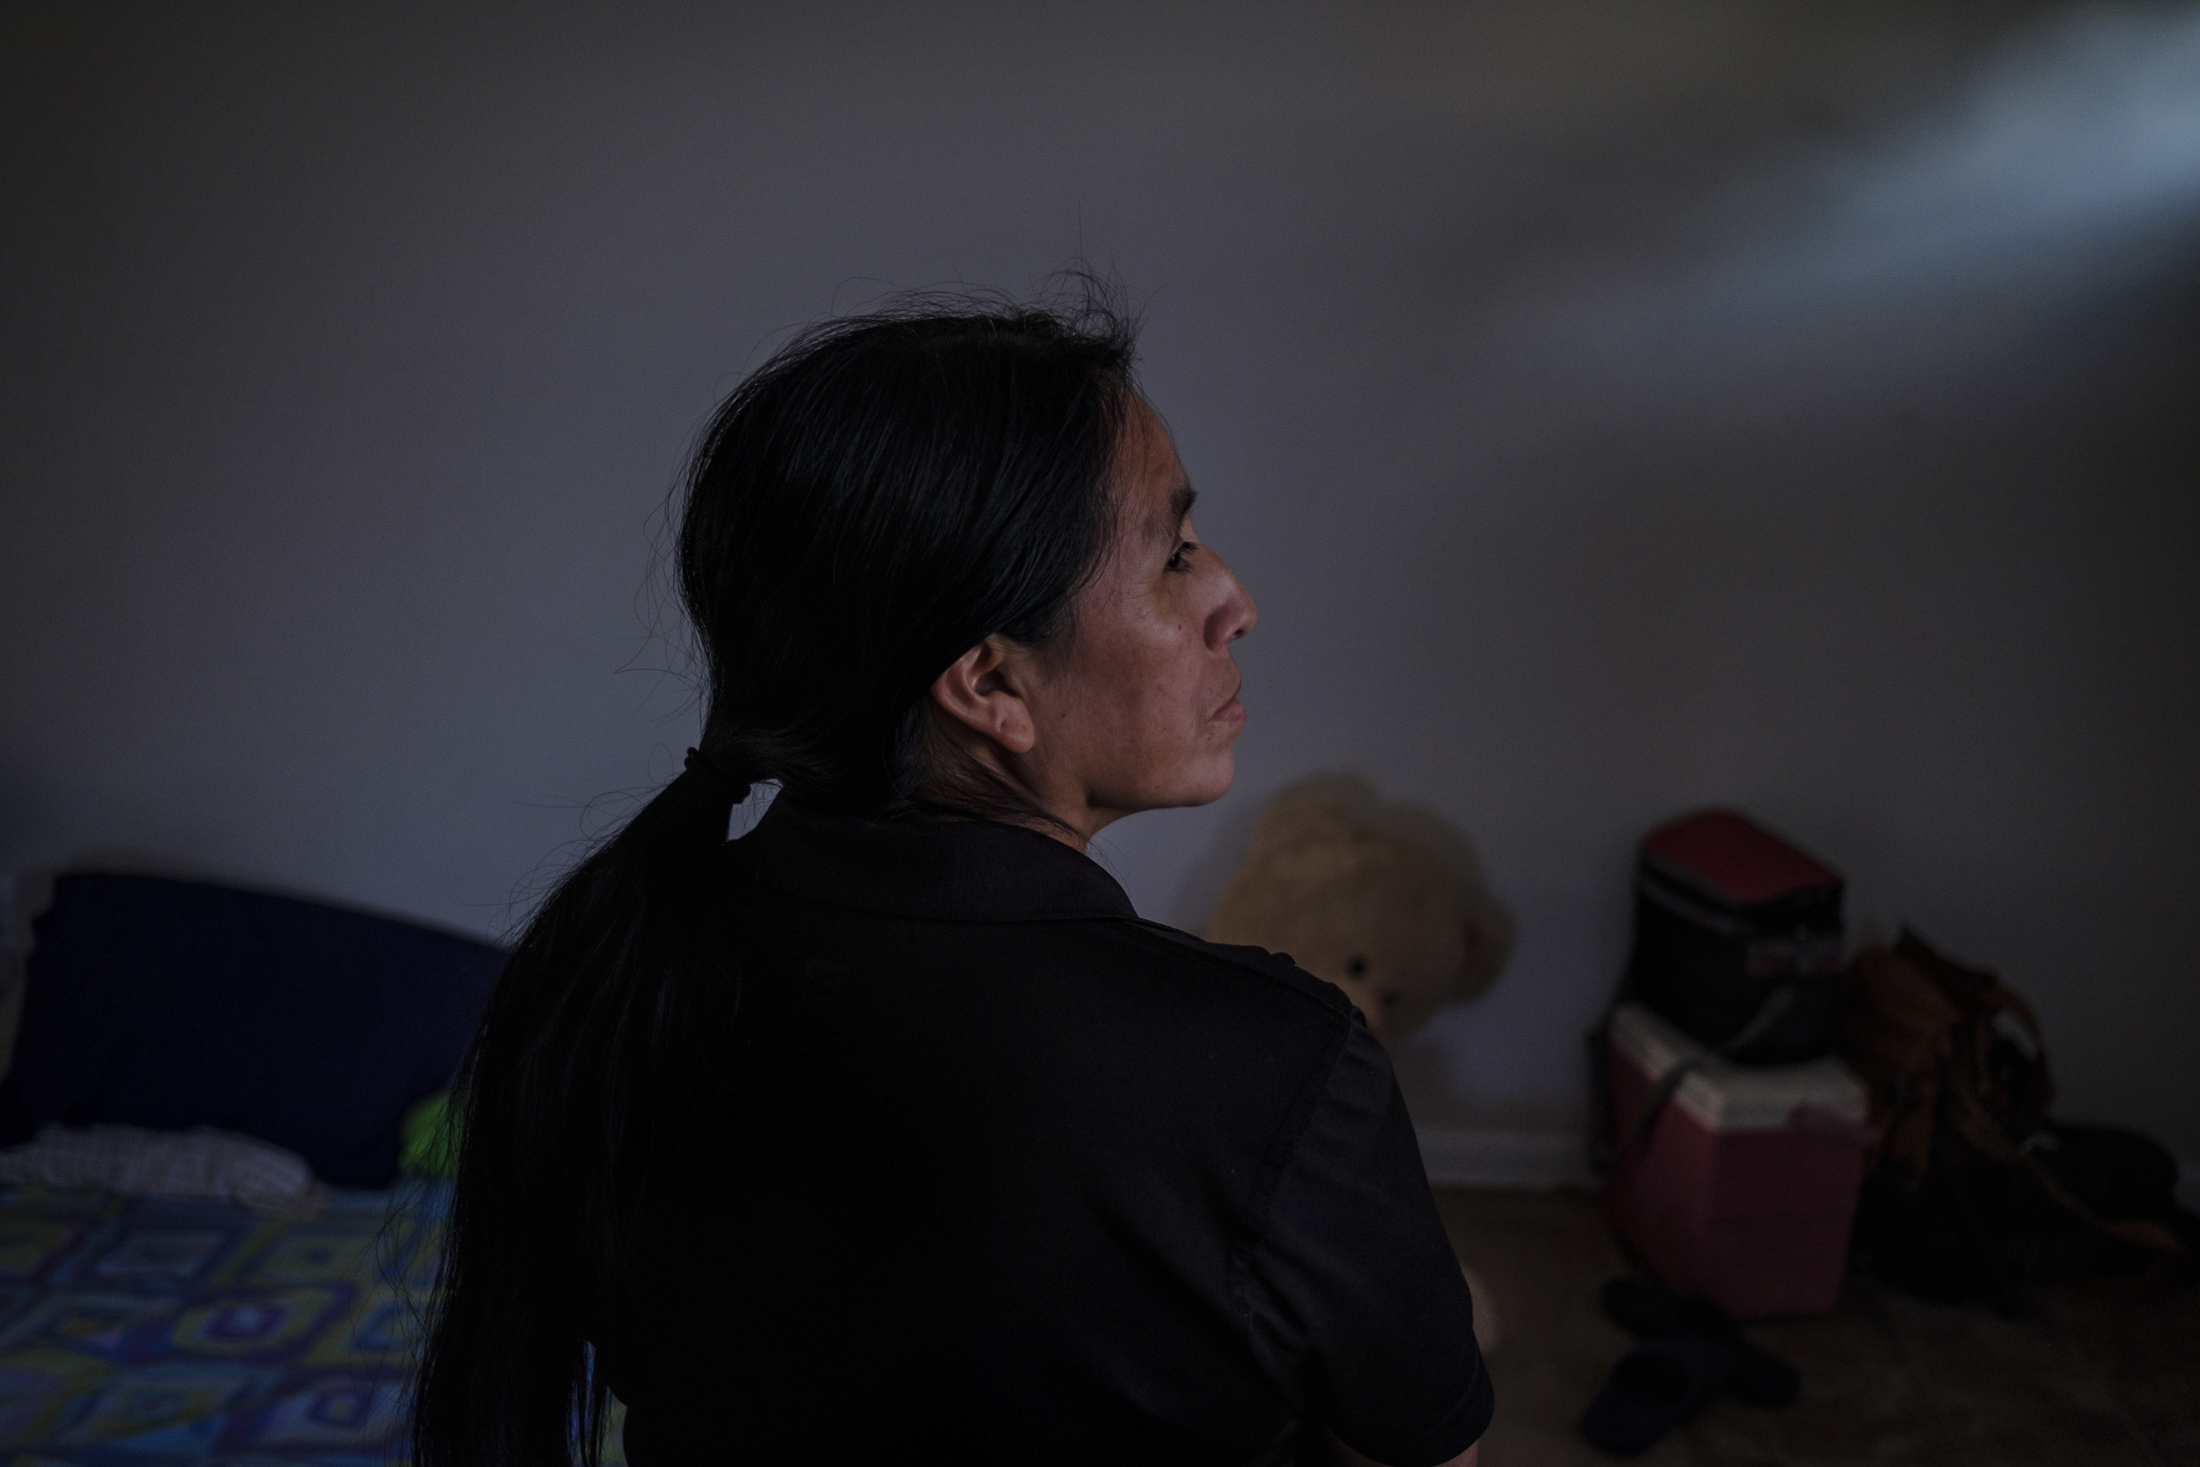 Maria in her home looks out to the window at the sight of an ICE agent, since her day of deportation is current and could arrive at her door any time. María Chavalan Sut, indigenous woman from Guatemala in her home looking out to the window at the sight of an ICE agent, since her day of deportation is current and ICE could arrive at her door any time. She fled to the United States after individuals threatened to kill her in an effort to usurp her land. The seriousness of the threat is not in question: they set fire to her home in Guatemala City while Maria and her family were inside. They lost all their possessions. Maria had to flee Guatemala for her life and was able to come to Virginia. She has been working multiple jobs in order to send money back home to support her children and to rebuild the home her family lost in the fire. Employers in Guatemala would not hire her because she is an indigenous person. Even still, she taught mathematics to underprivileged children and also worked at a self-publishing company producing materials in her native Keqchikel language to help keep it from dying out.